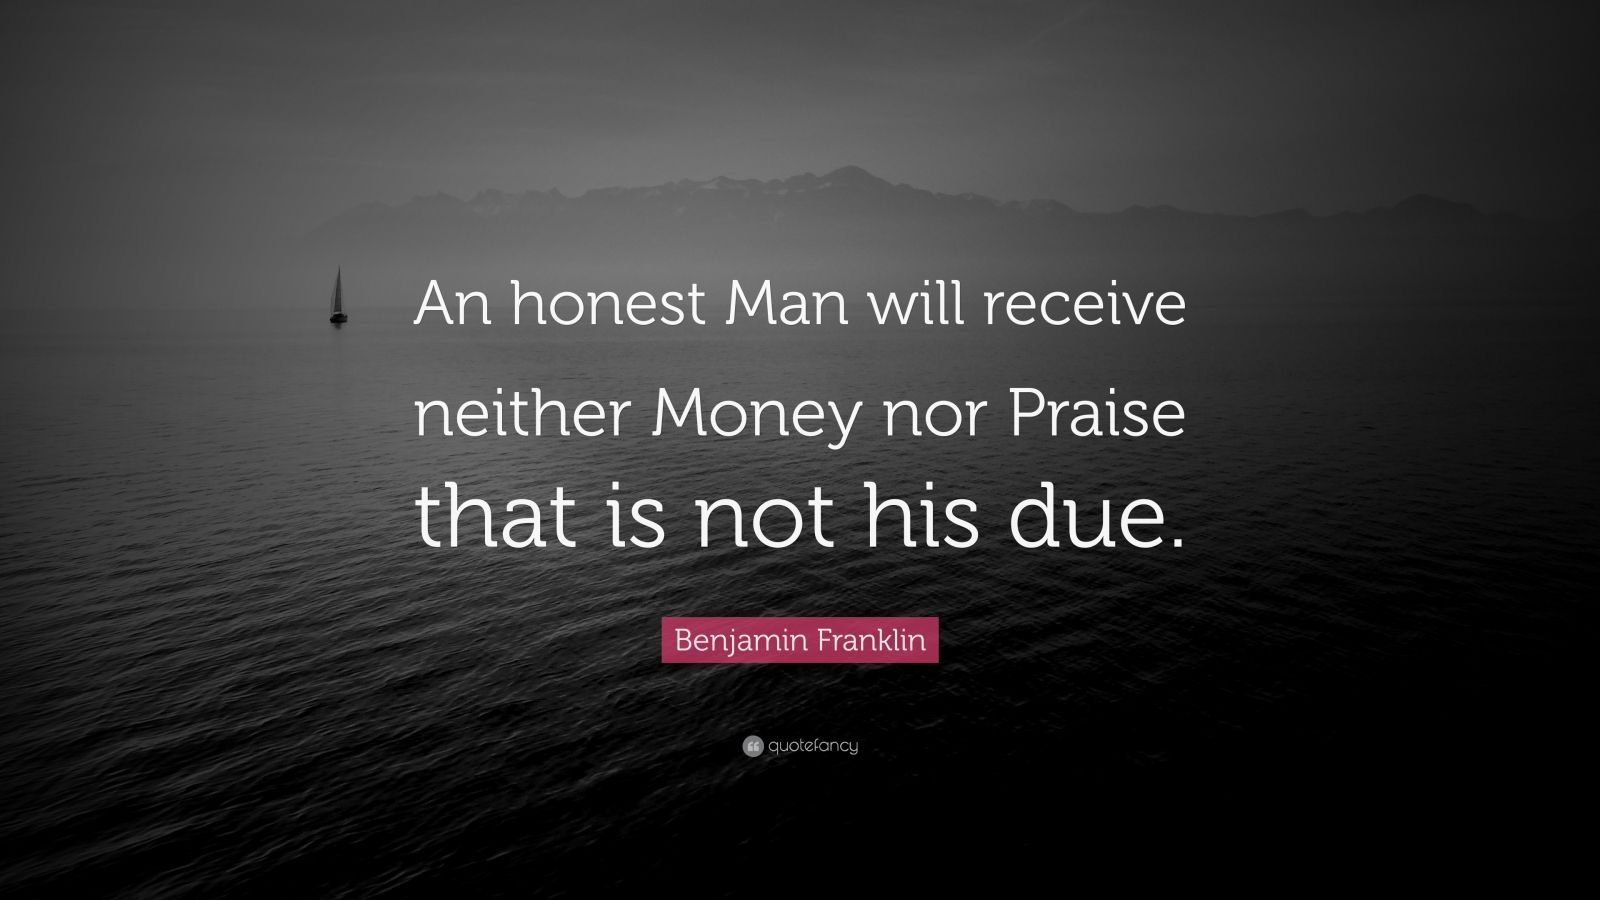 """Benjamin Franklin Quote: """"An honest Man will receive neither Money nor Praise that is not his due."""""""